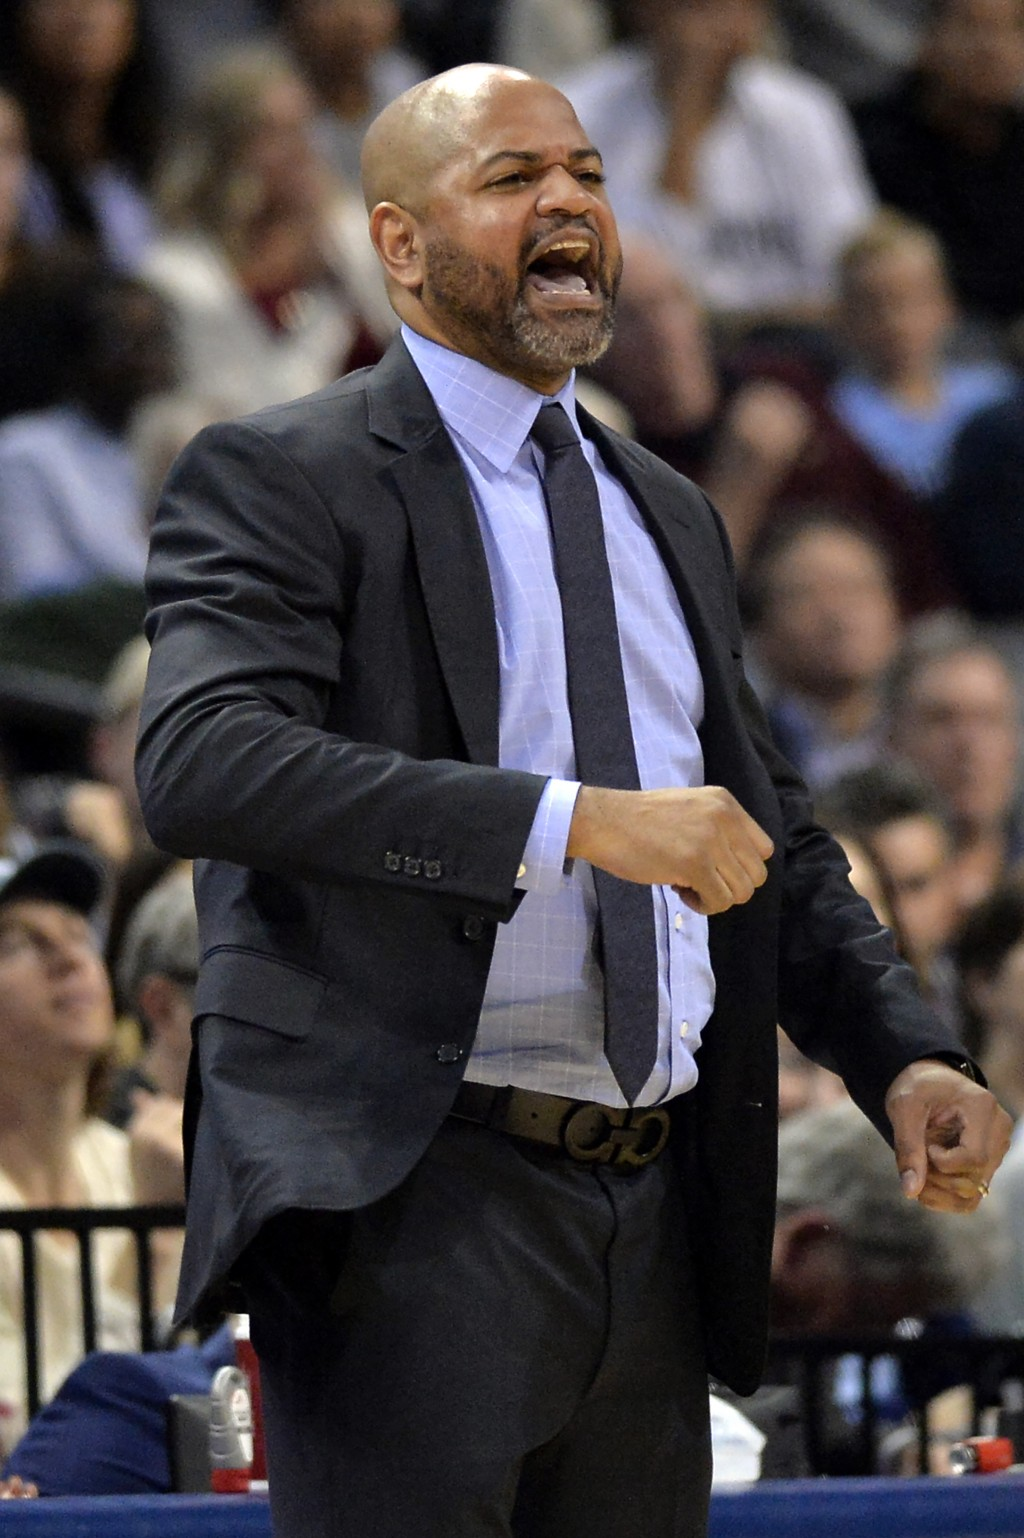 Memphis Grizzlies coach J.B. Bickerstaff calls to players during the second half of an NBA basketball game against the Cleveland Cavaliers on Wednesda...